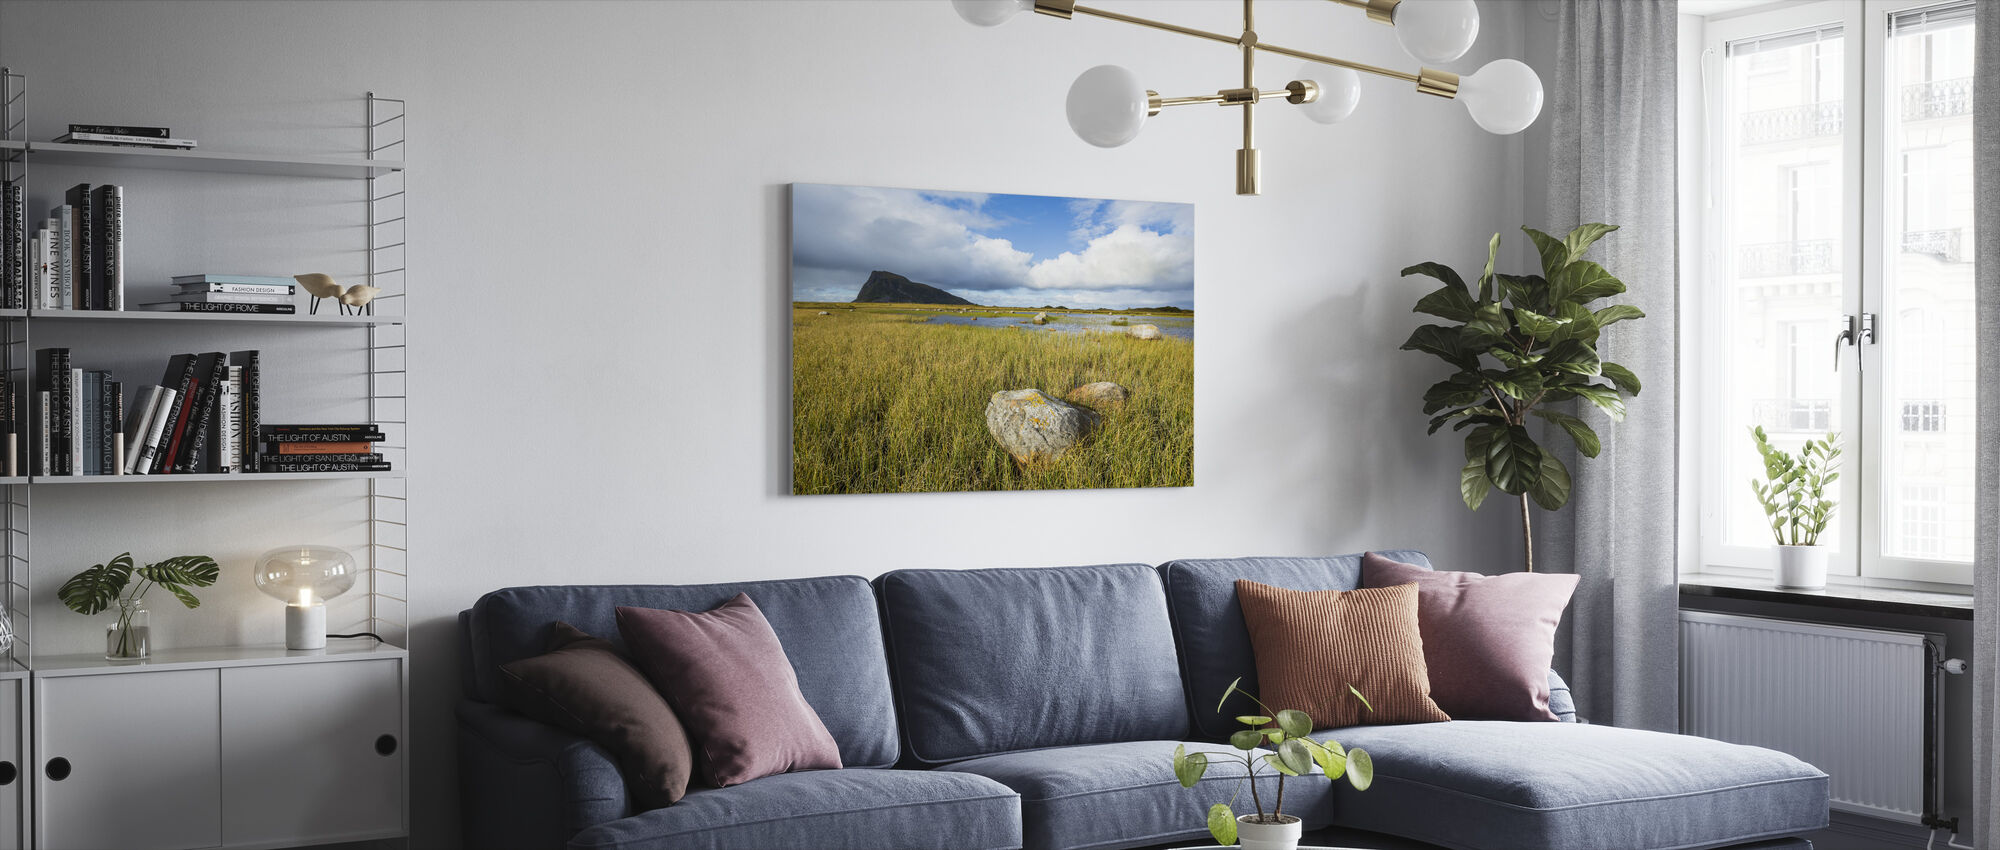 Rock formations in Grassy Coastline, Norway - Canvas print - Living Room